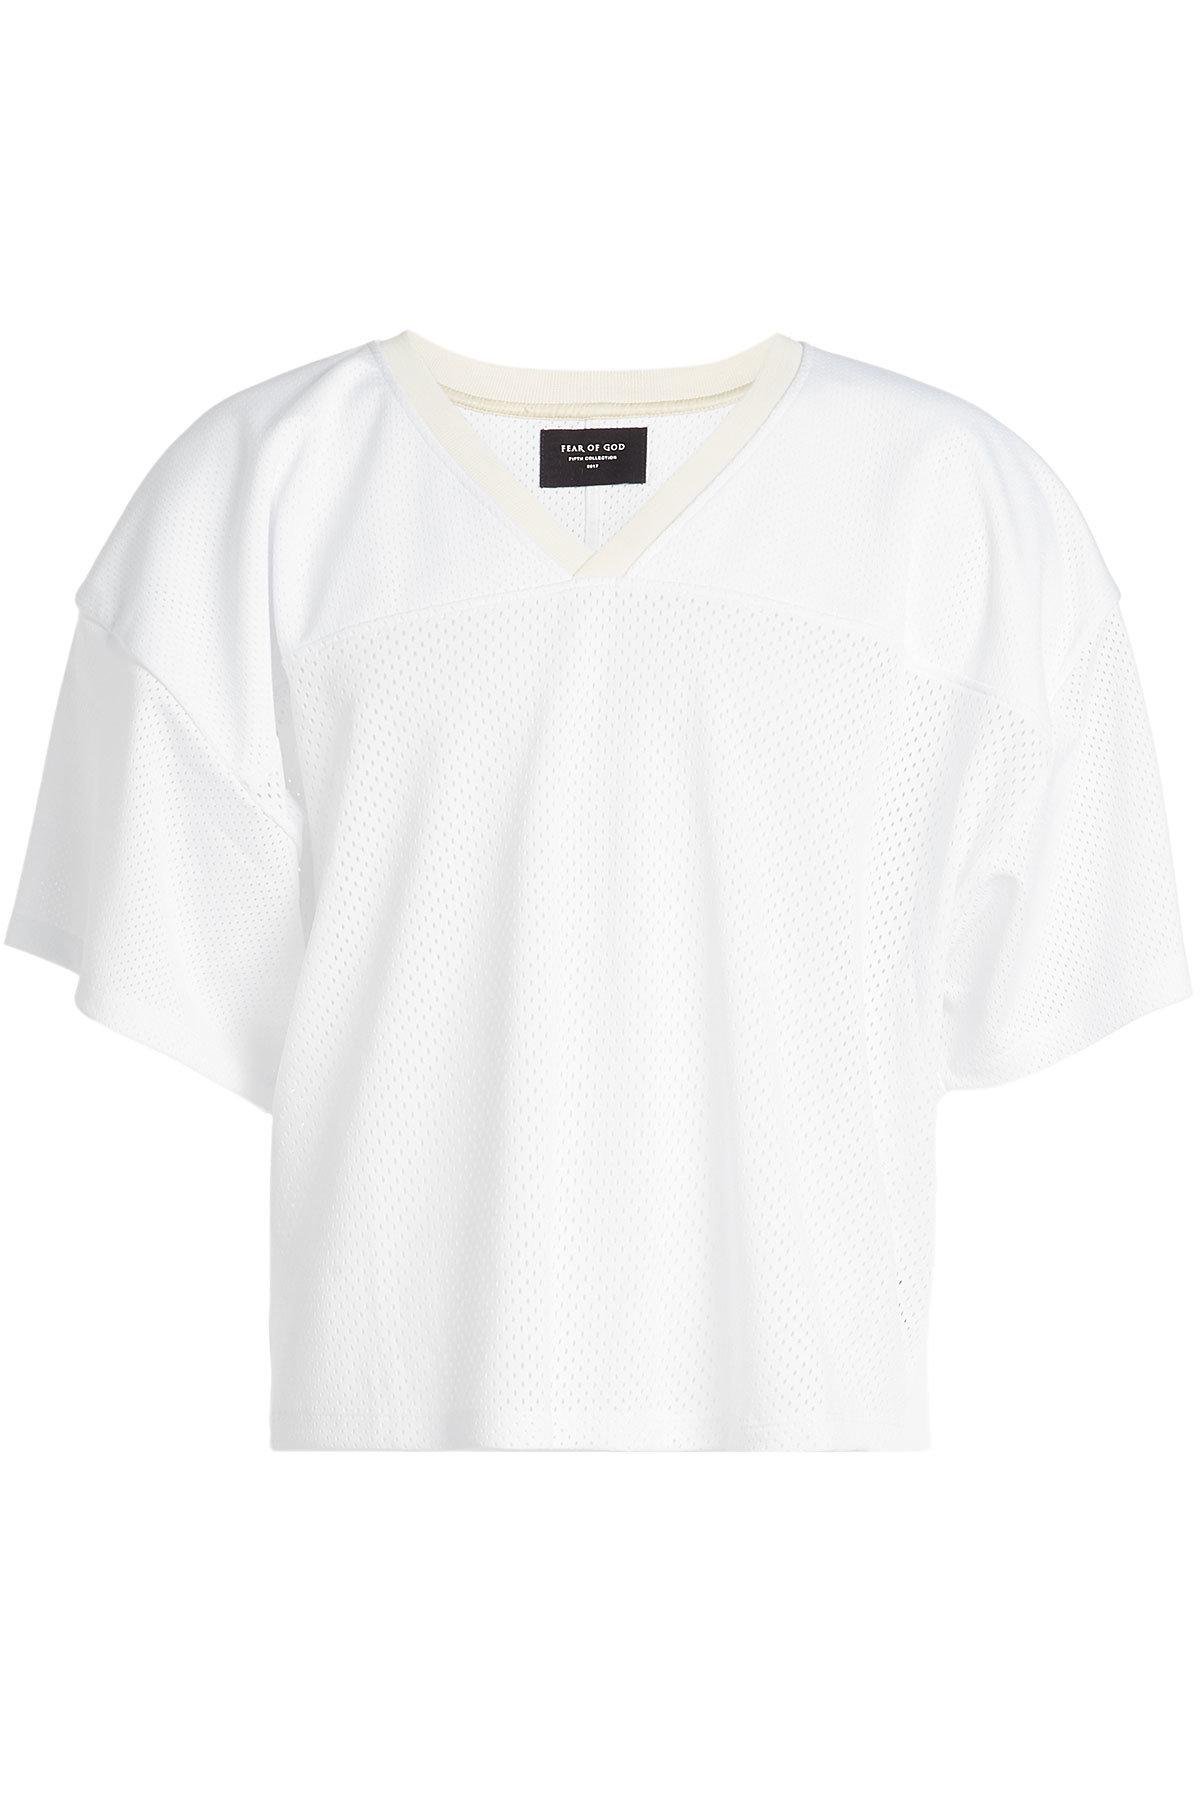 Fear Of God Mesh T-Shirt In White